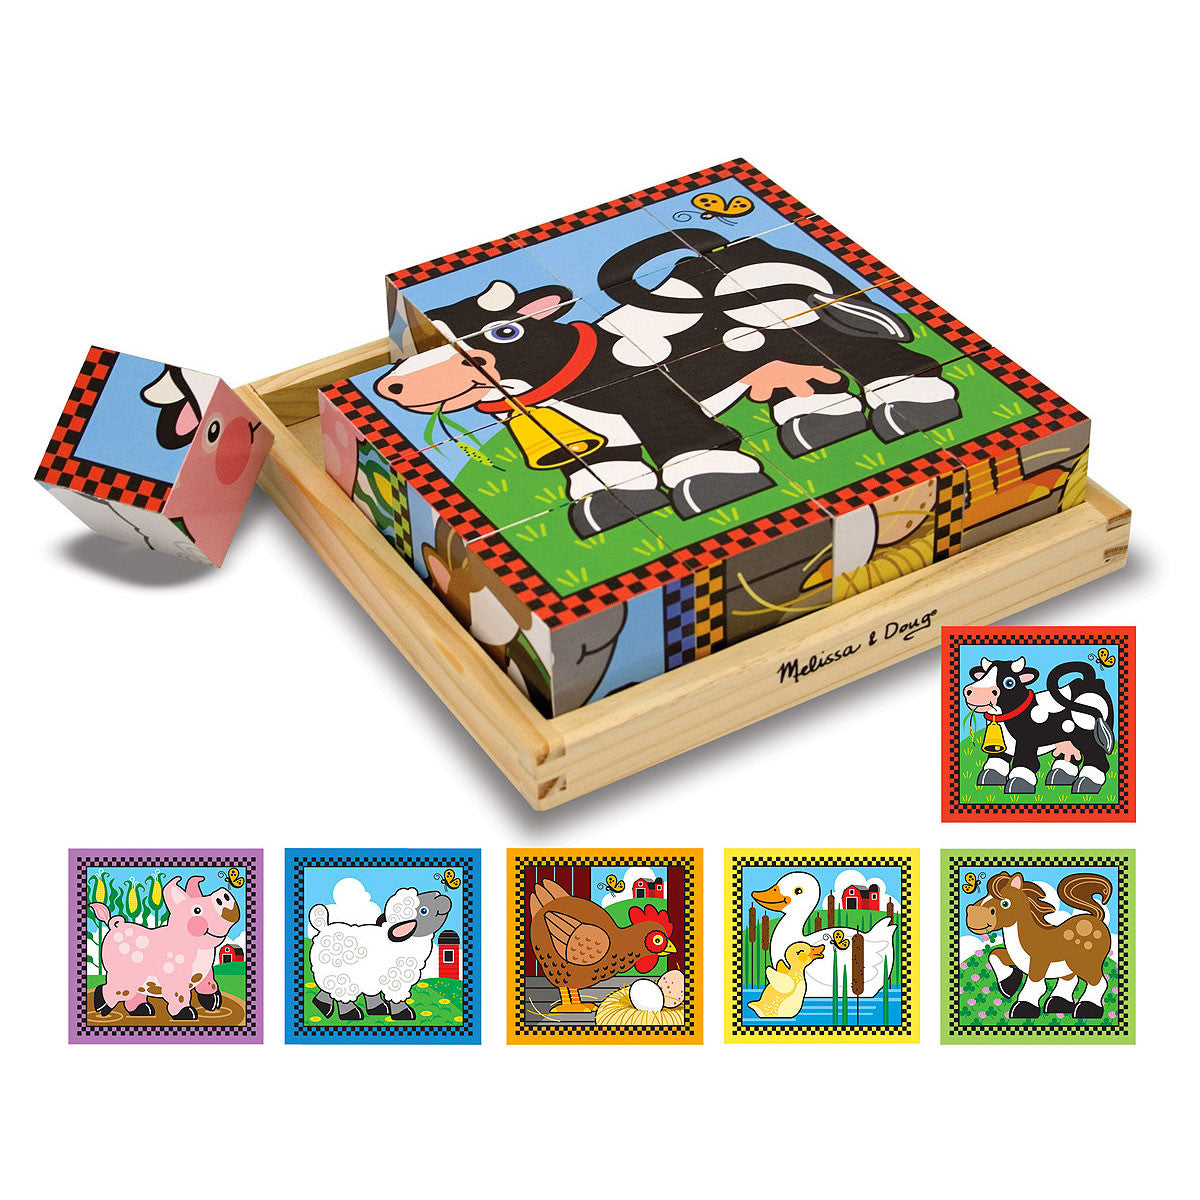 Melissa and Doug Cube Puzzle - 16 Piece Melissa and Doug Wooden Blocks Farm at Little Earth Nest Eco Shop